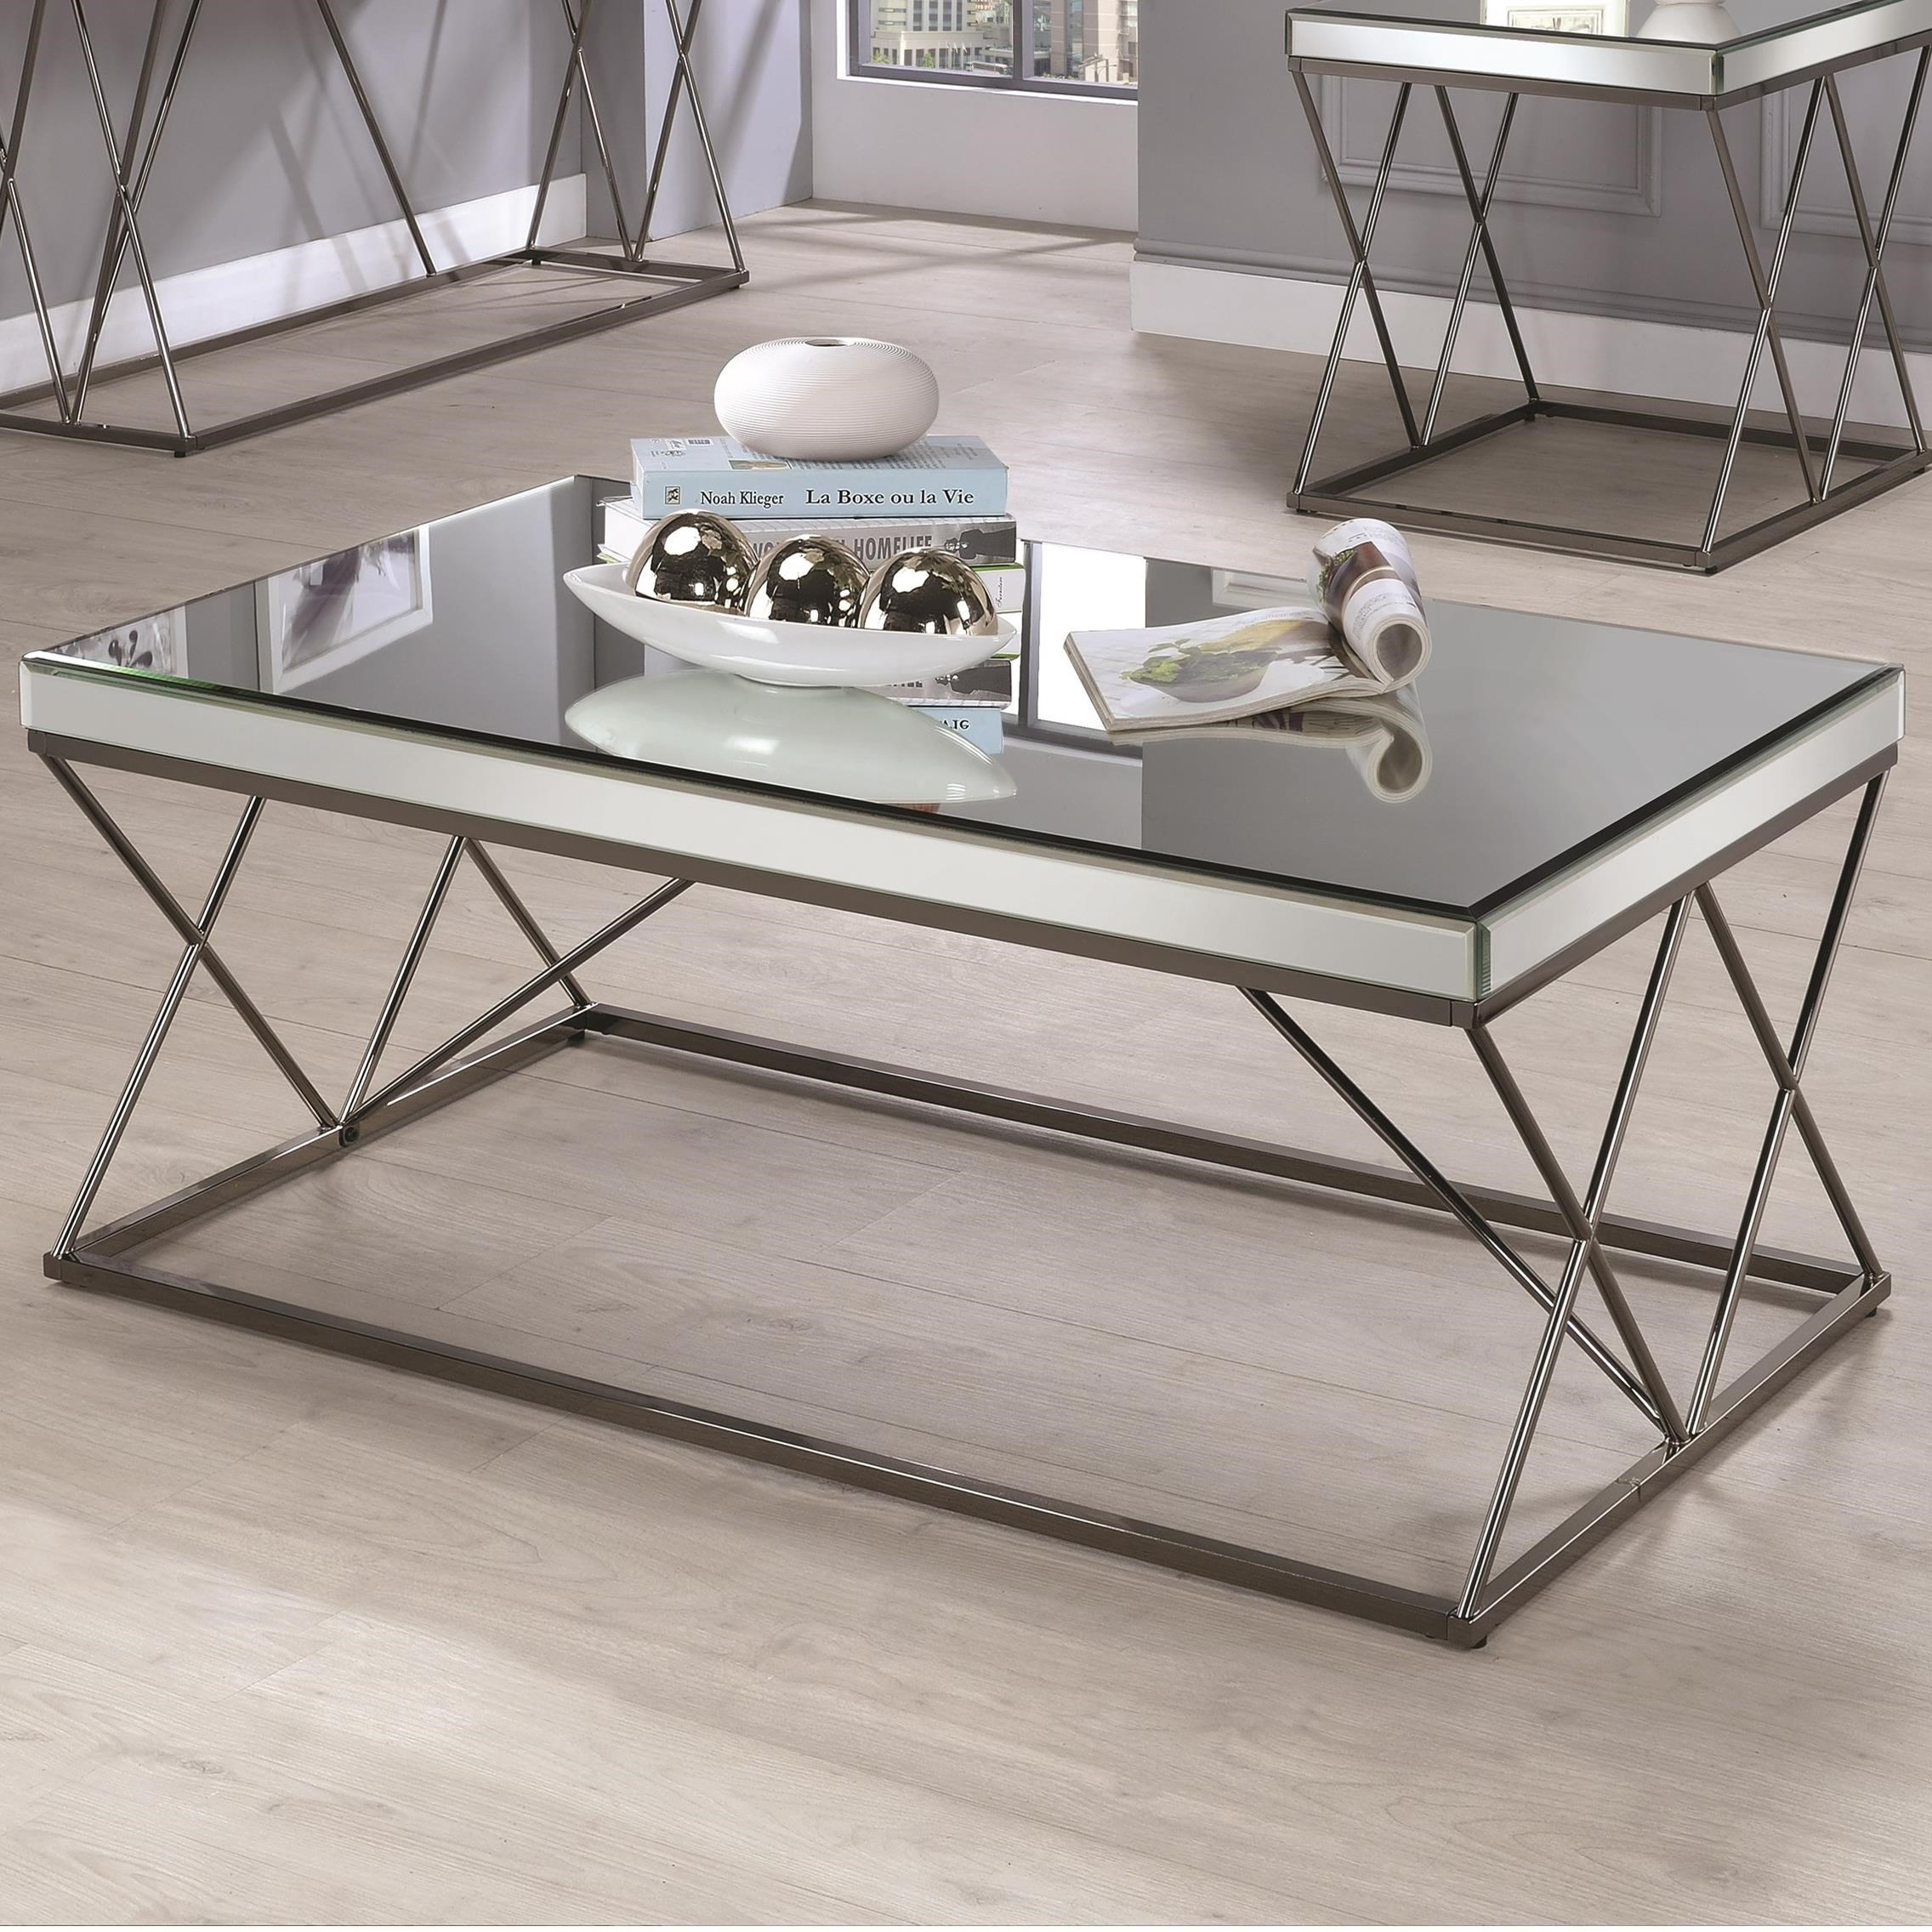 Remarkable 70547 Contemporary Mirrored Coffee Table With Metal Legs Theyellowbook Wood Chair Design Ideas Theyellowbookinfo